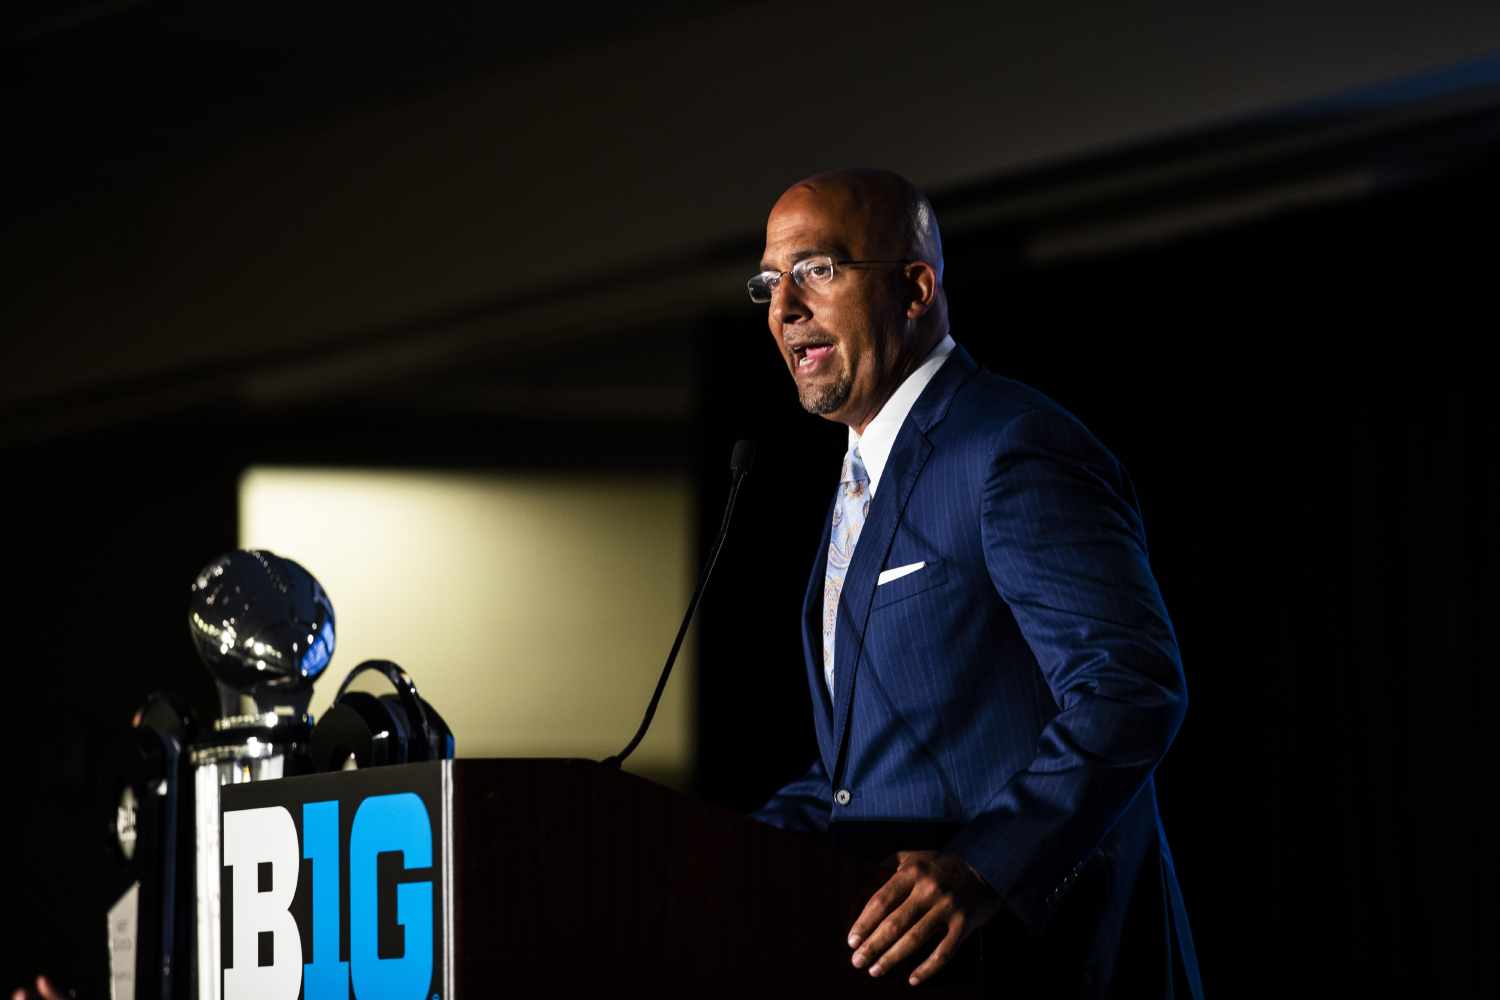 Penn State head coach James Franklin speaks during the second day of Big Ten Football Media Days in Chicago, Ill., on Friday, July 19, 2019.